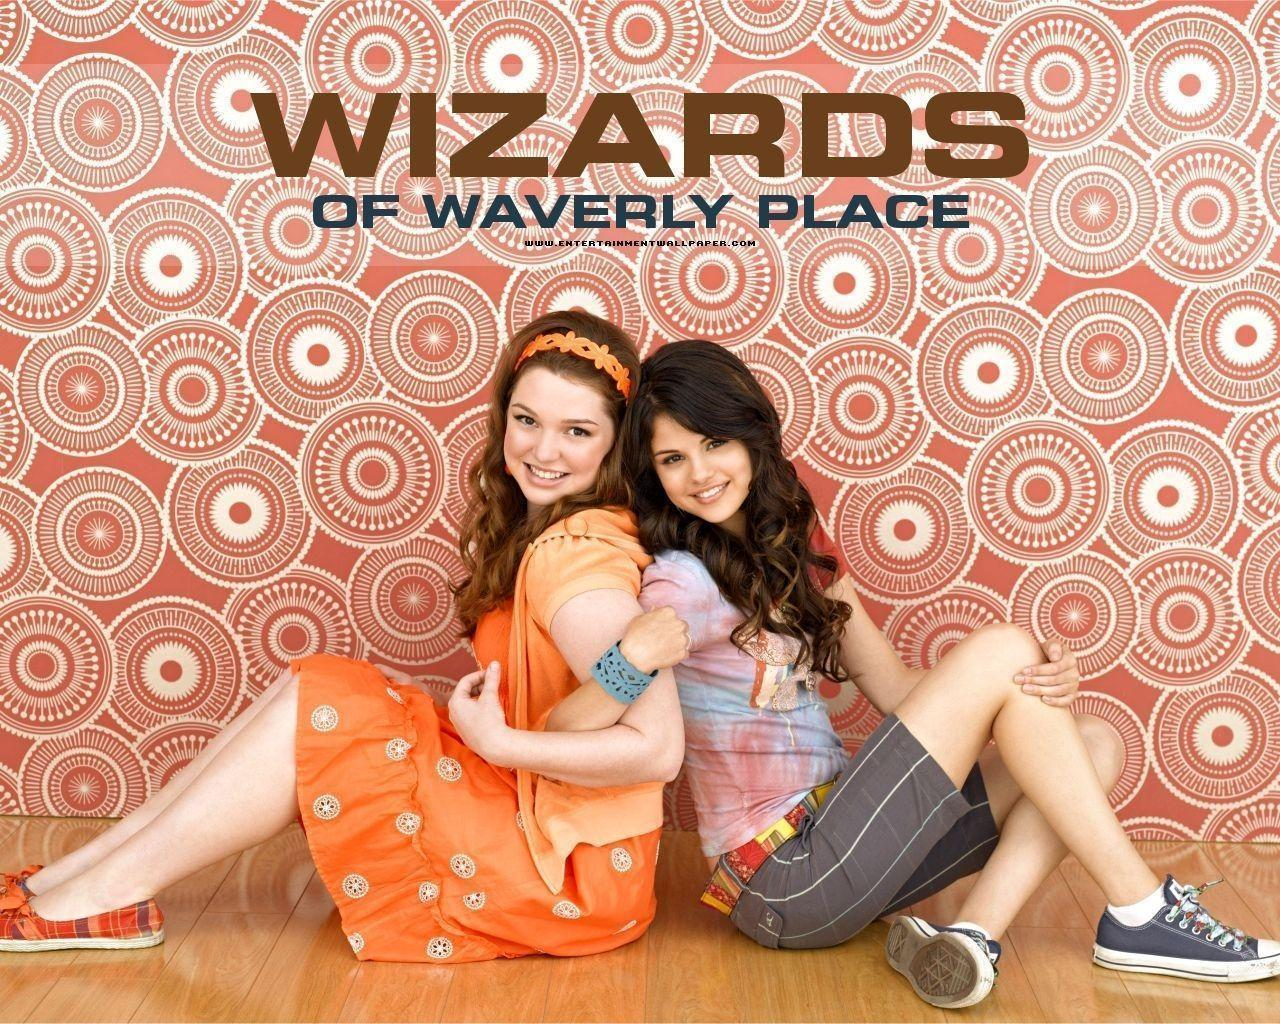 Wizards of waverly place the movie wallpapers wallpaper cave for The waverly